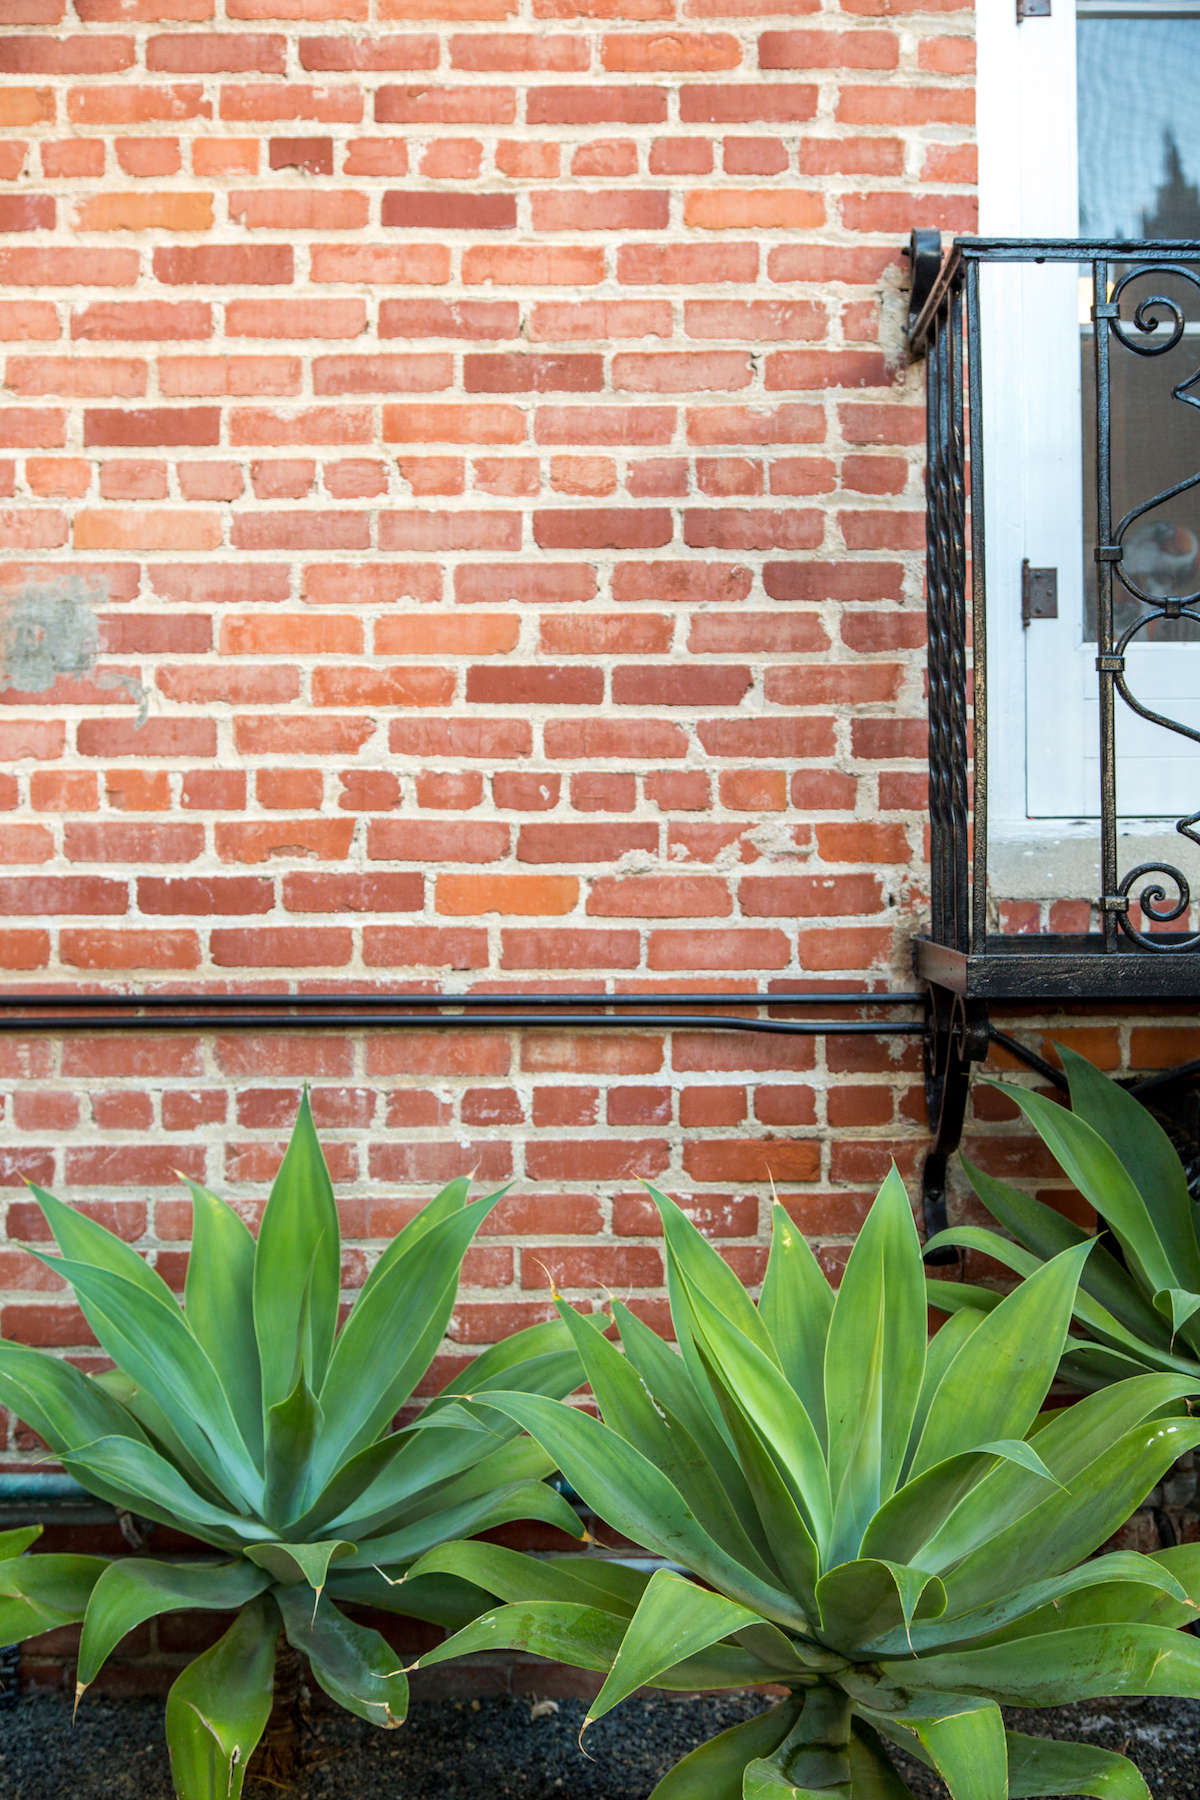 Large succulents in front of brick wall with black painted pipes